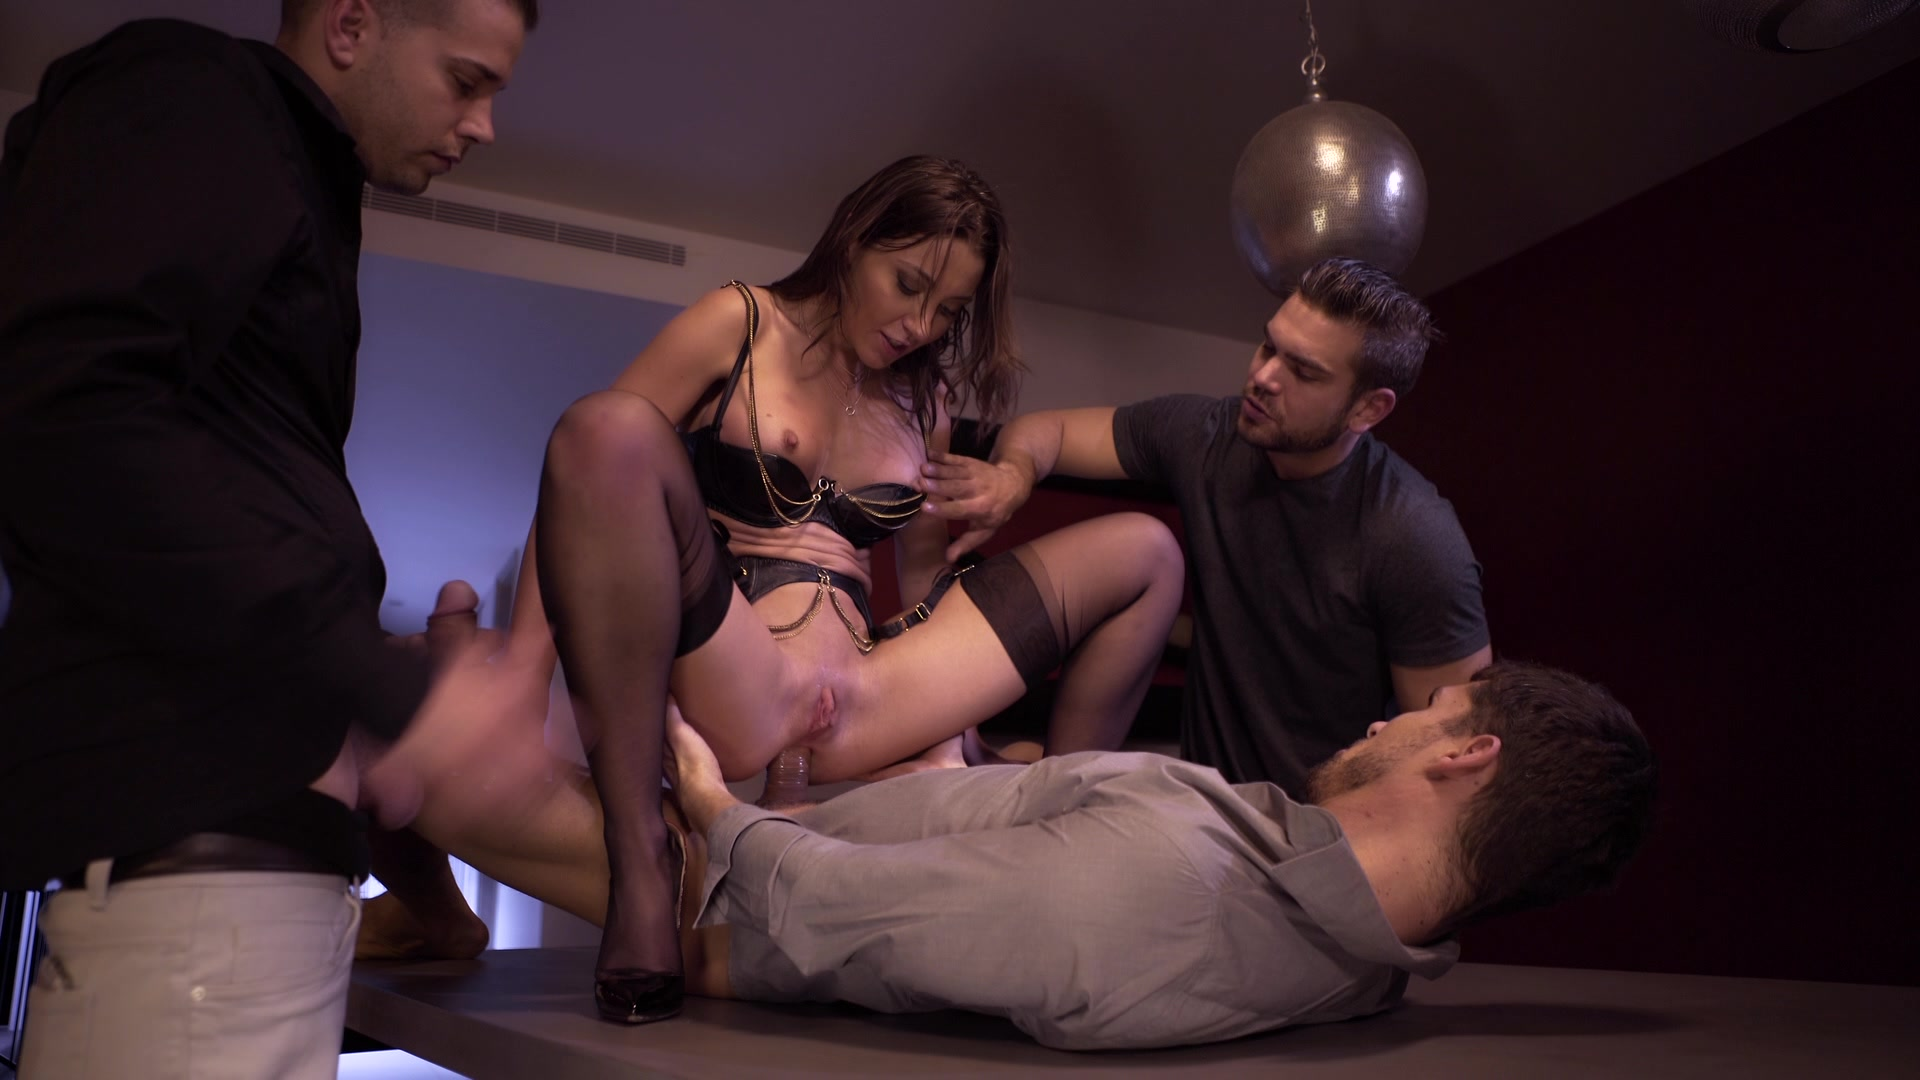 Scene with Julie Skyhigh - image 18 out of 20